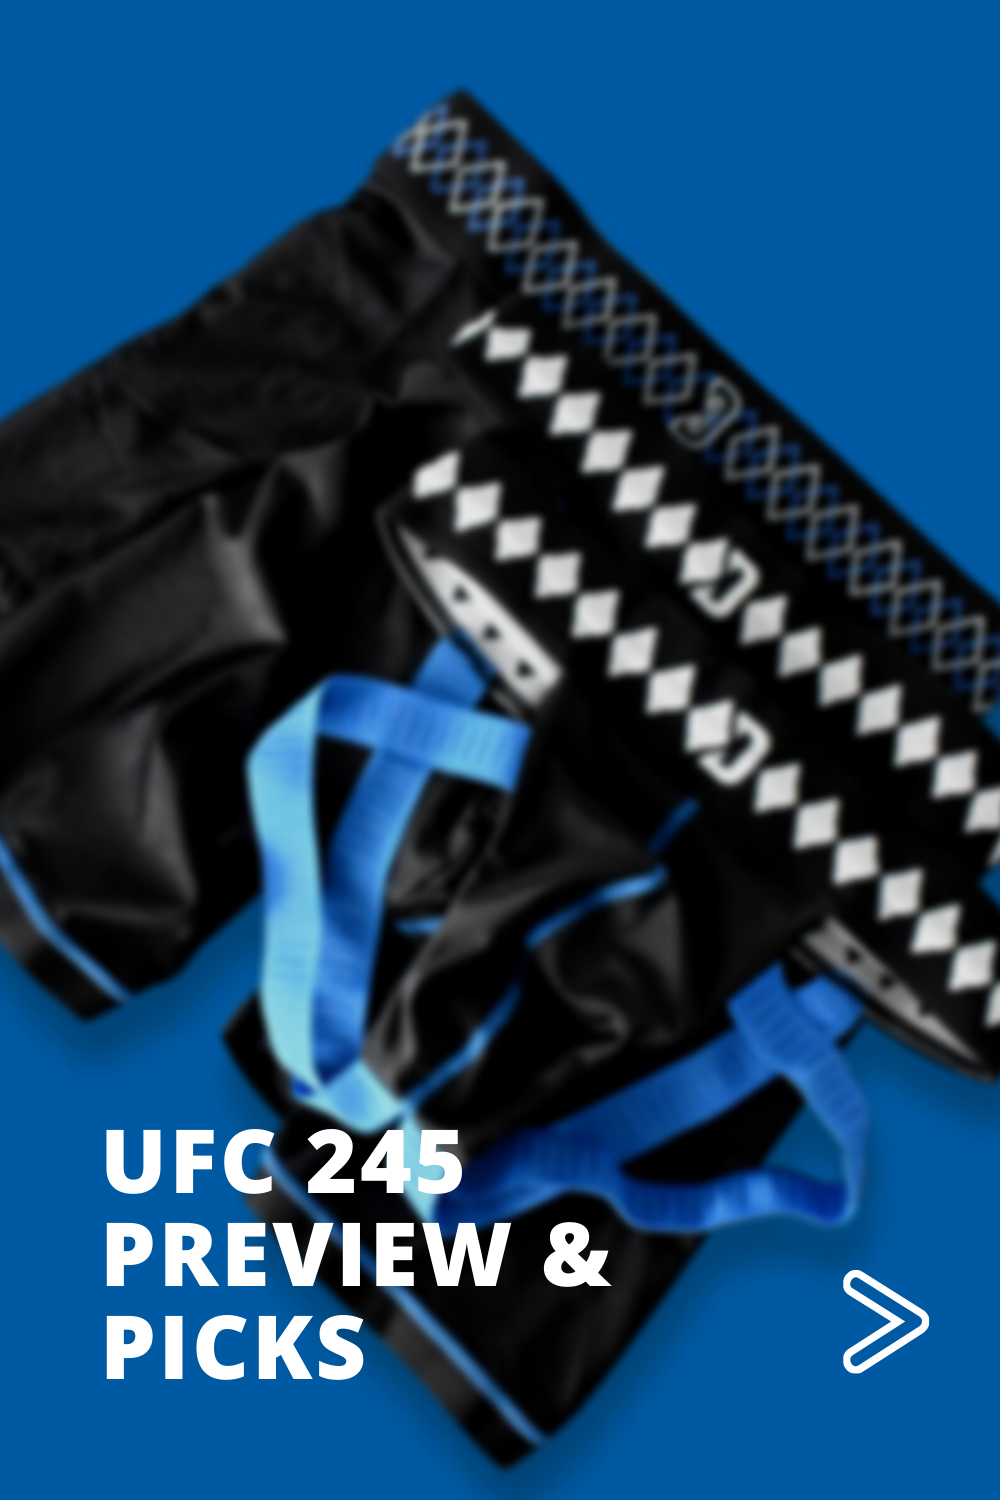 UFC 245 Preview & Picks